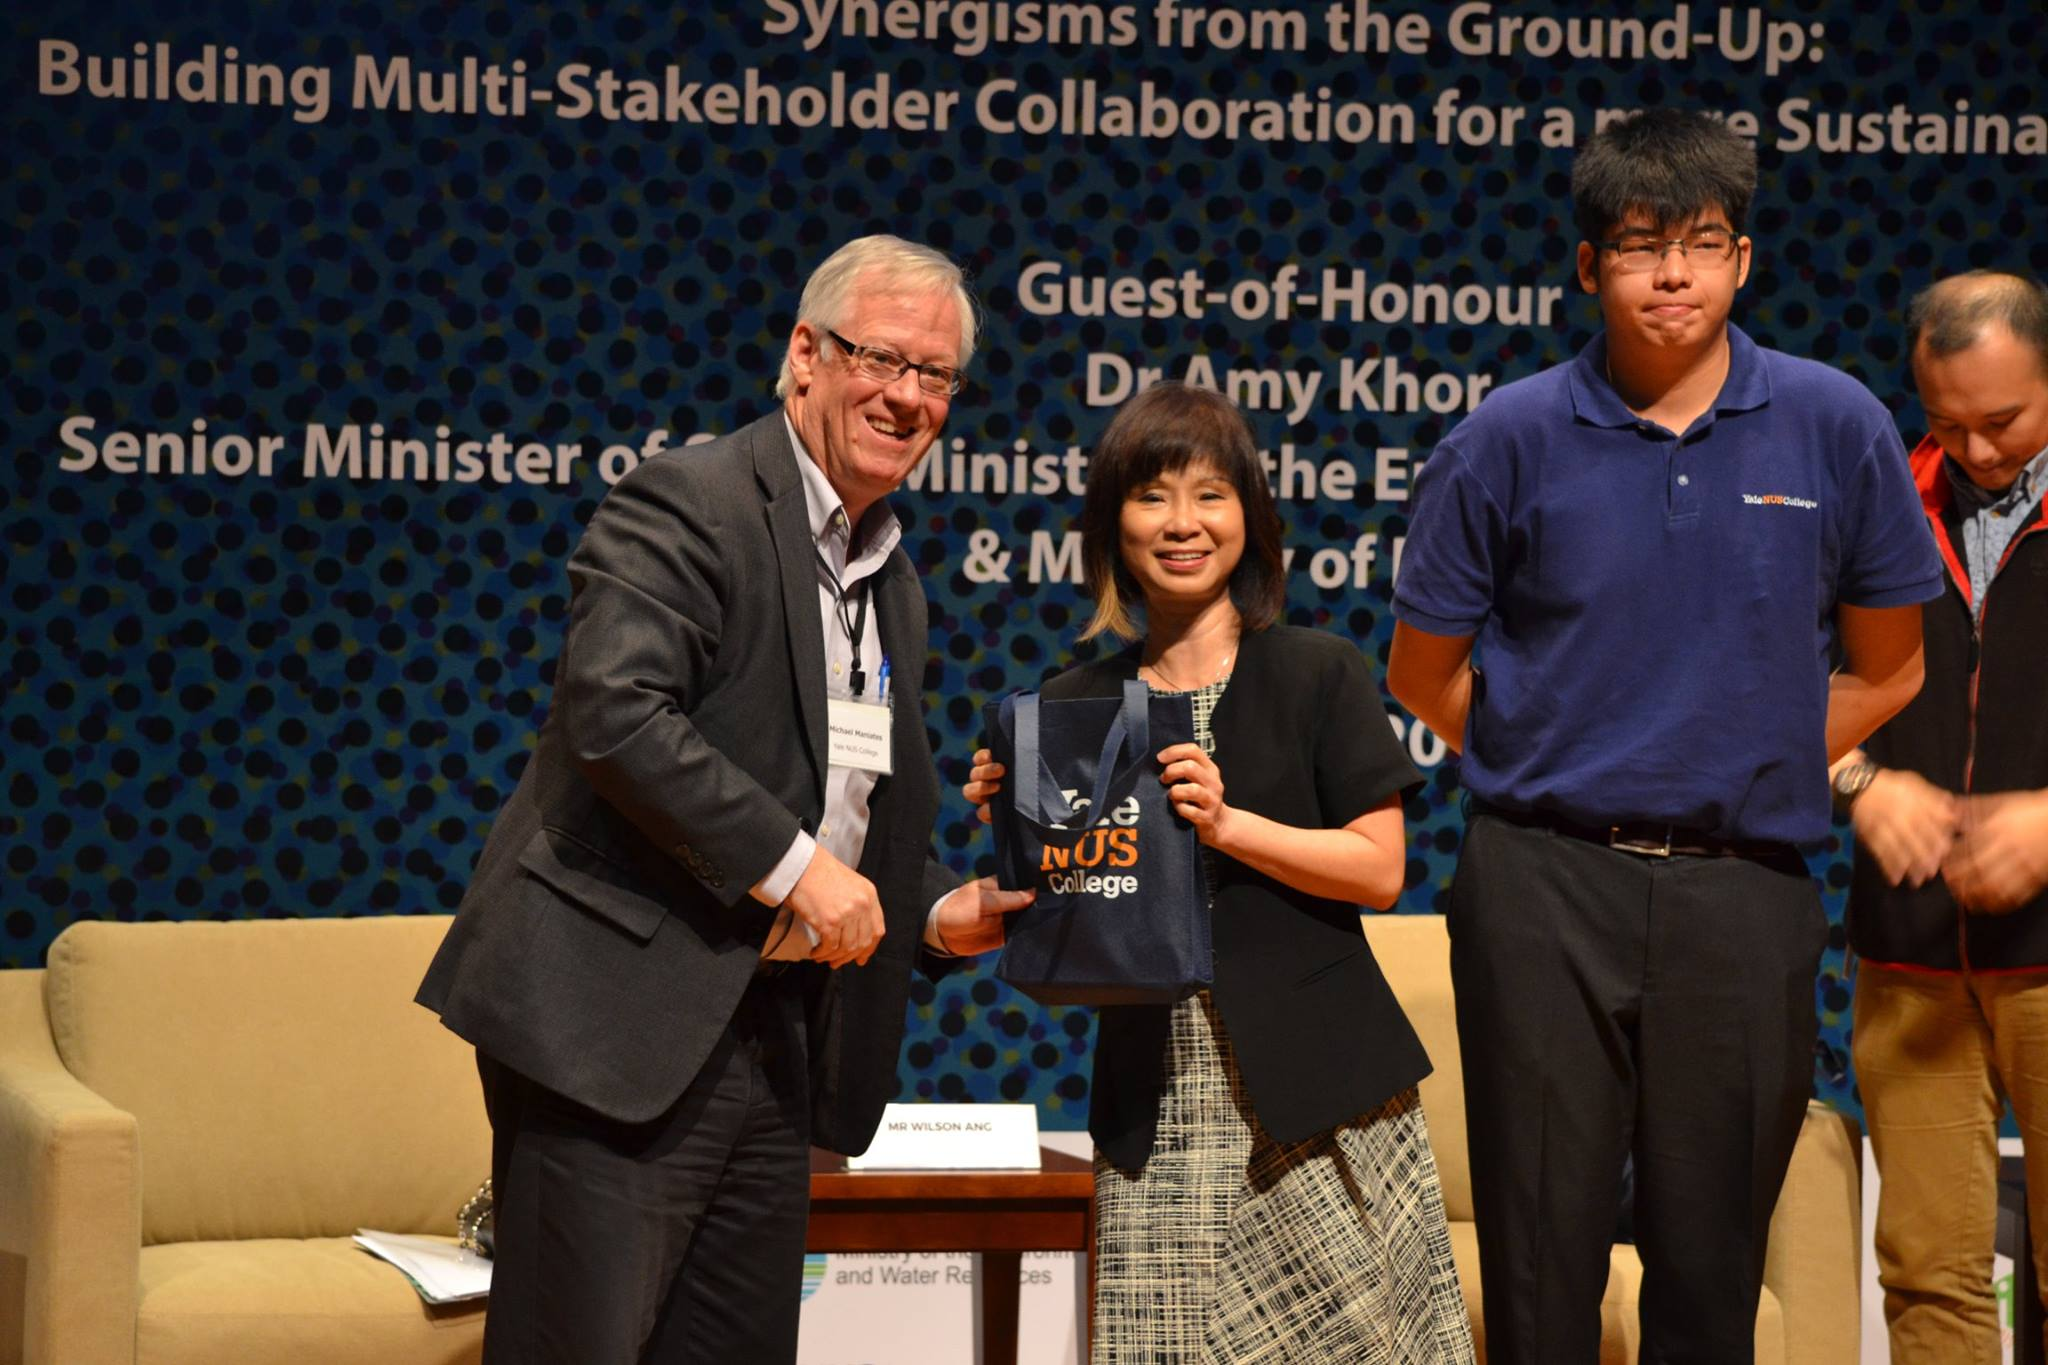 Our Guest-of-Honour Dr Amy Khor presenting a token of appreciation to panel moderator, Prof Michael Maniates.